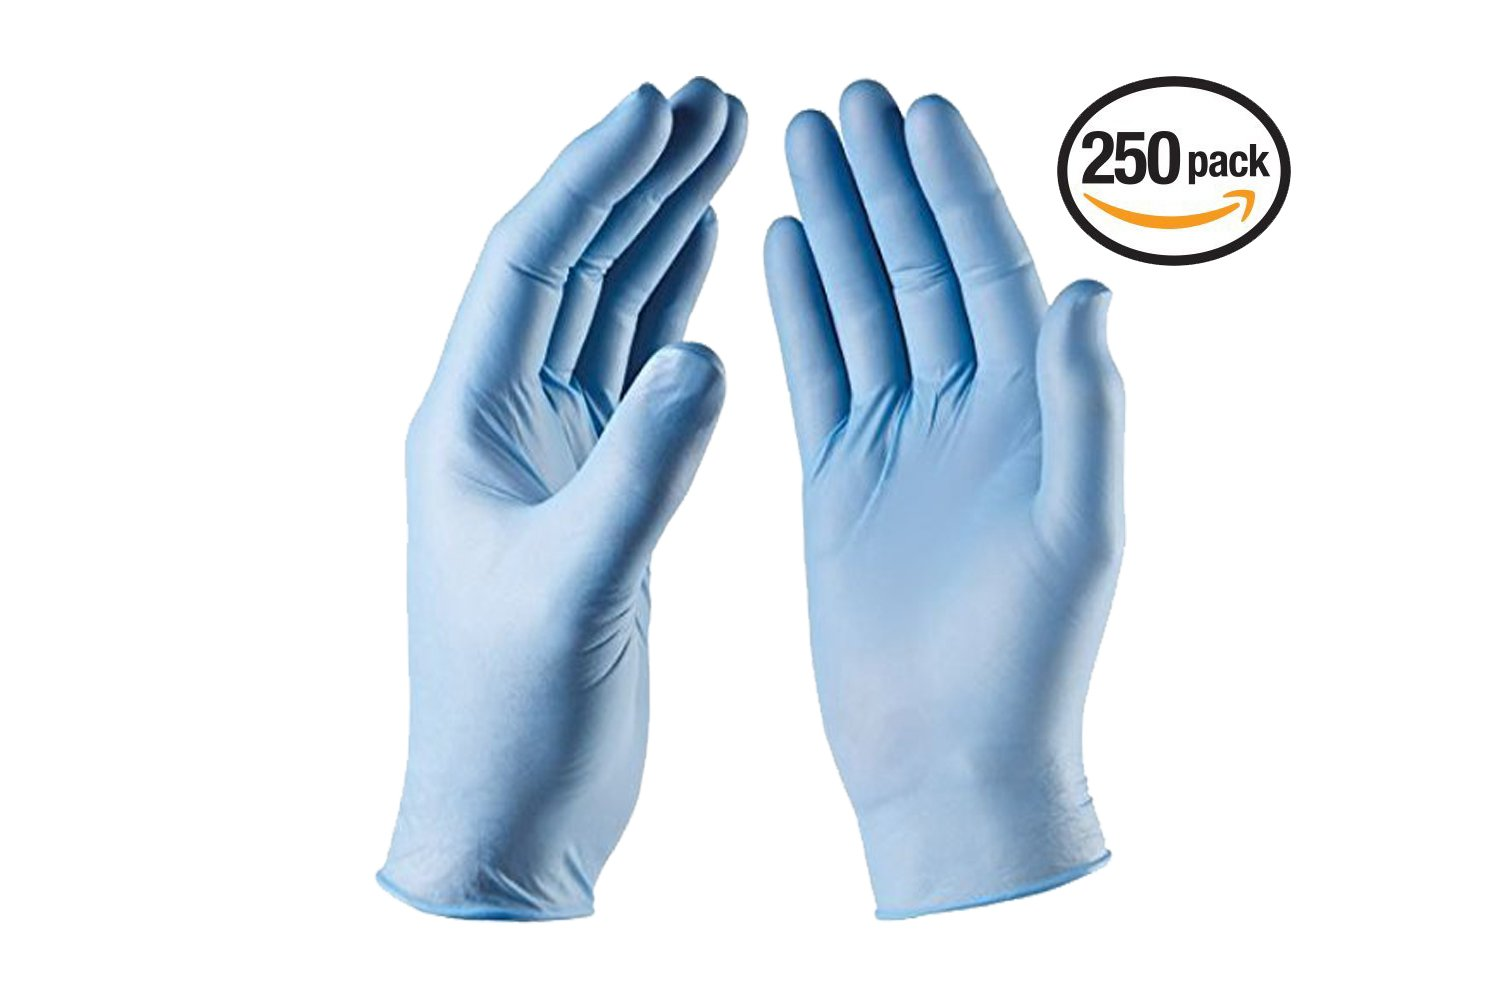 VIVID Nitrile Blue Medical Grade Non-Sterile Exam Gloves – Non-Latex, Powder, Rubber Free – For Dental, Medical, Food Handling, Automotive, Art, Craft, Home Use – 250 Count, Size X-Small, BlueTouch